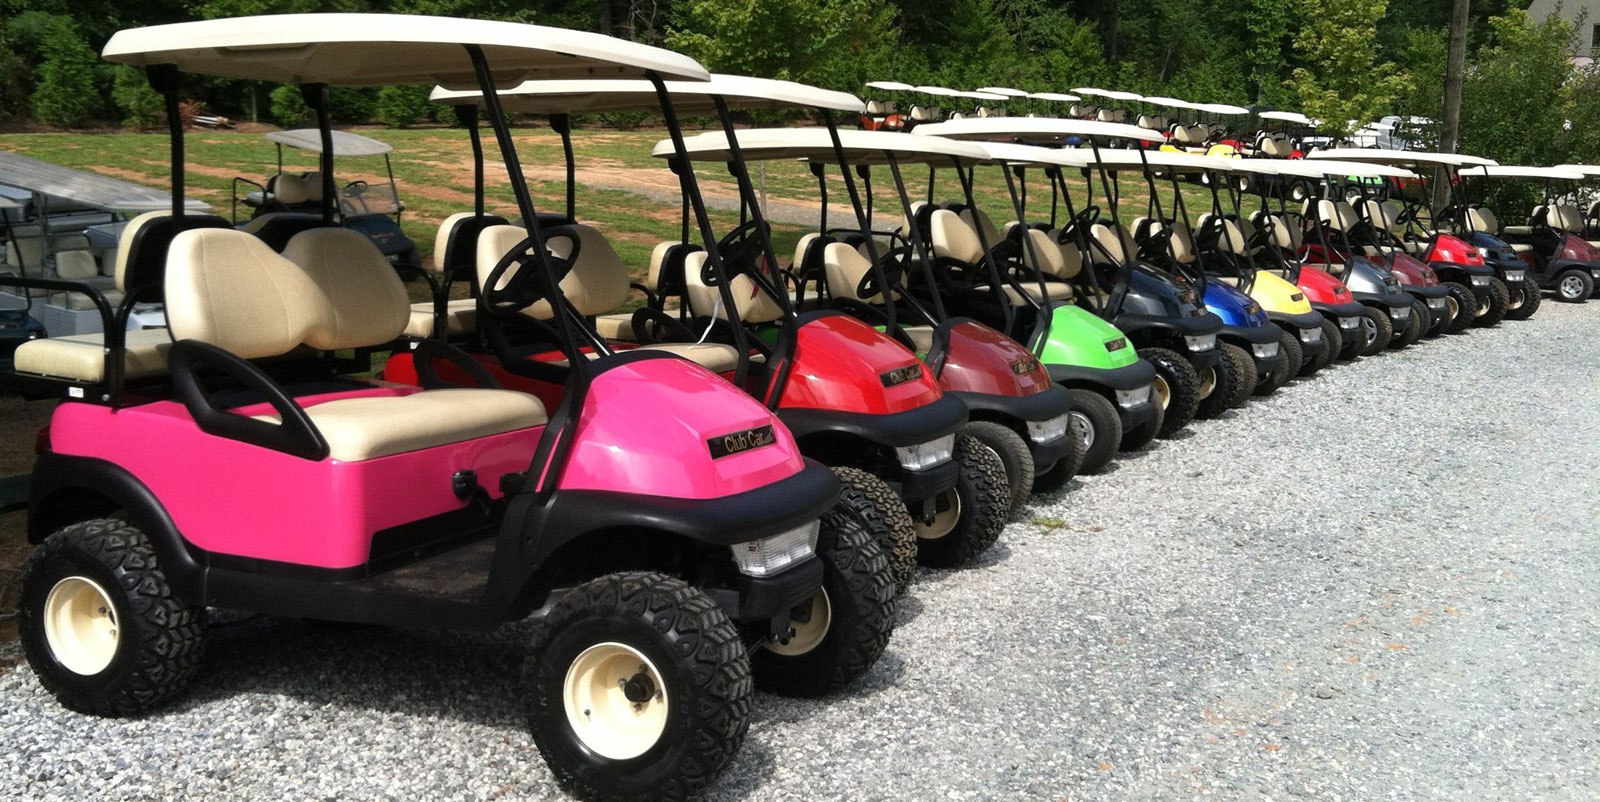 brads golf cars inc the golf cart leader in the triad of nc greensboro winston salem high point charlotte and lake norman